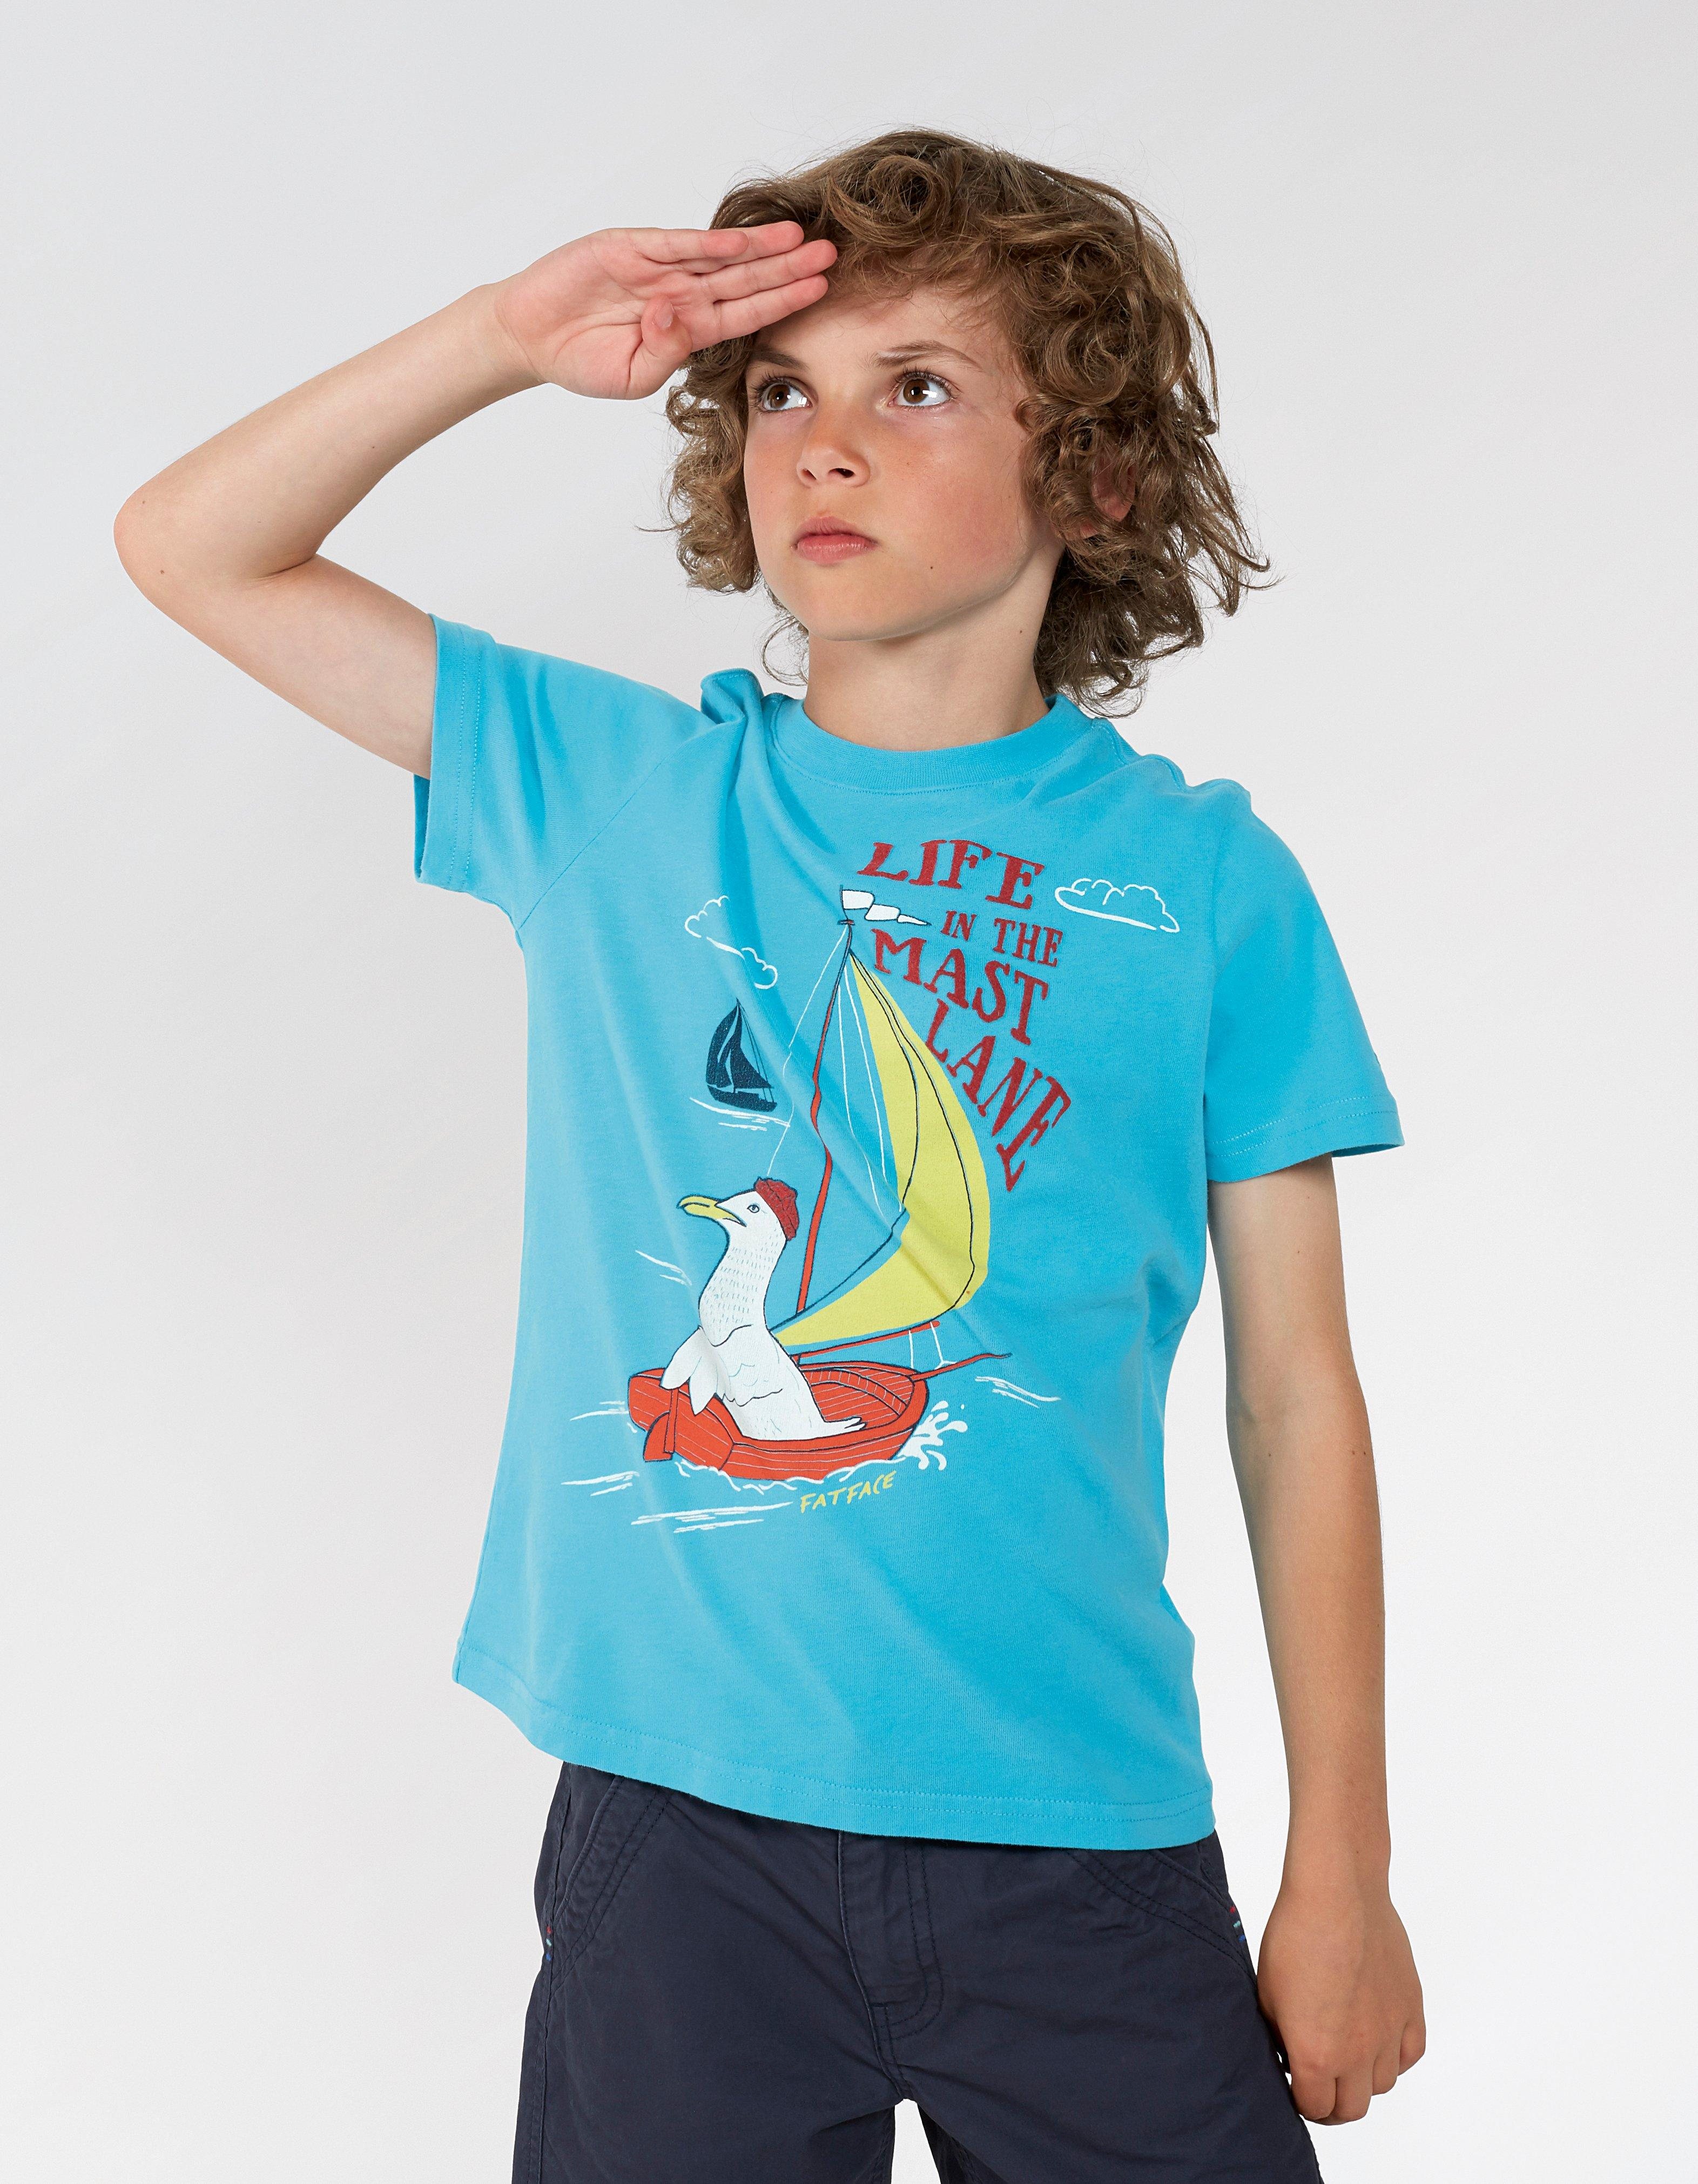 Life in the Mast Lane T-Shirt